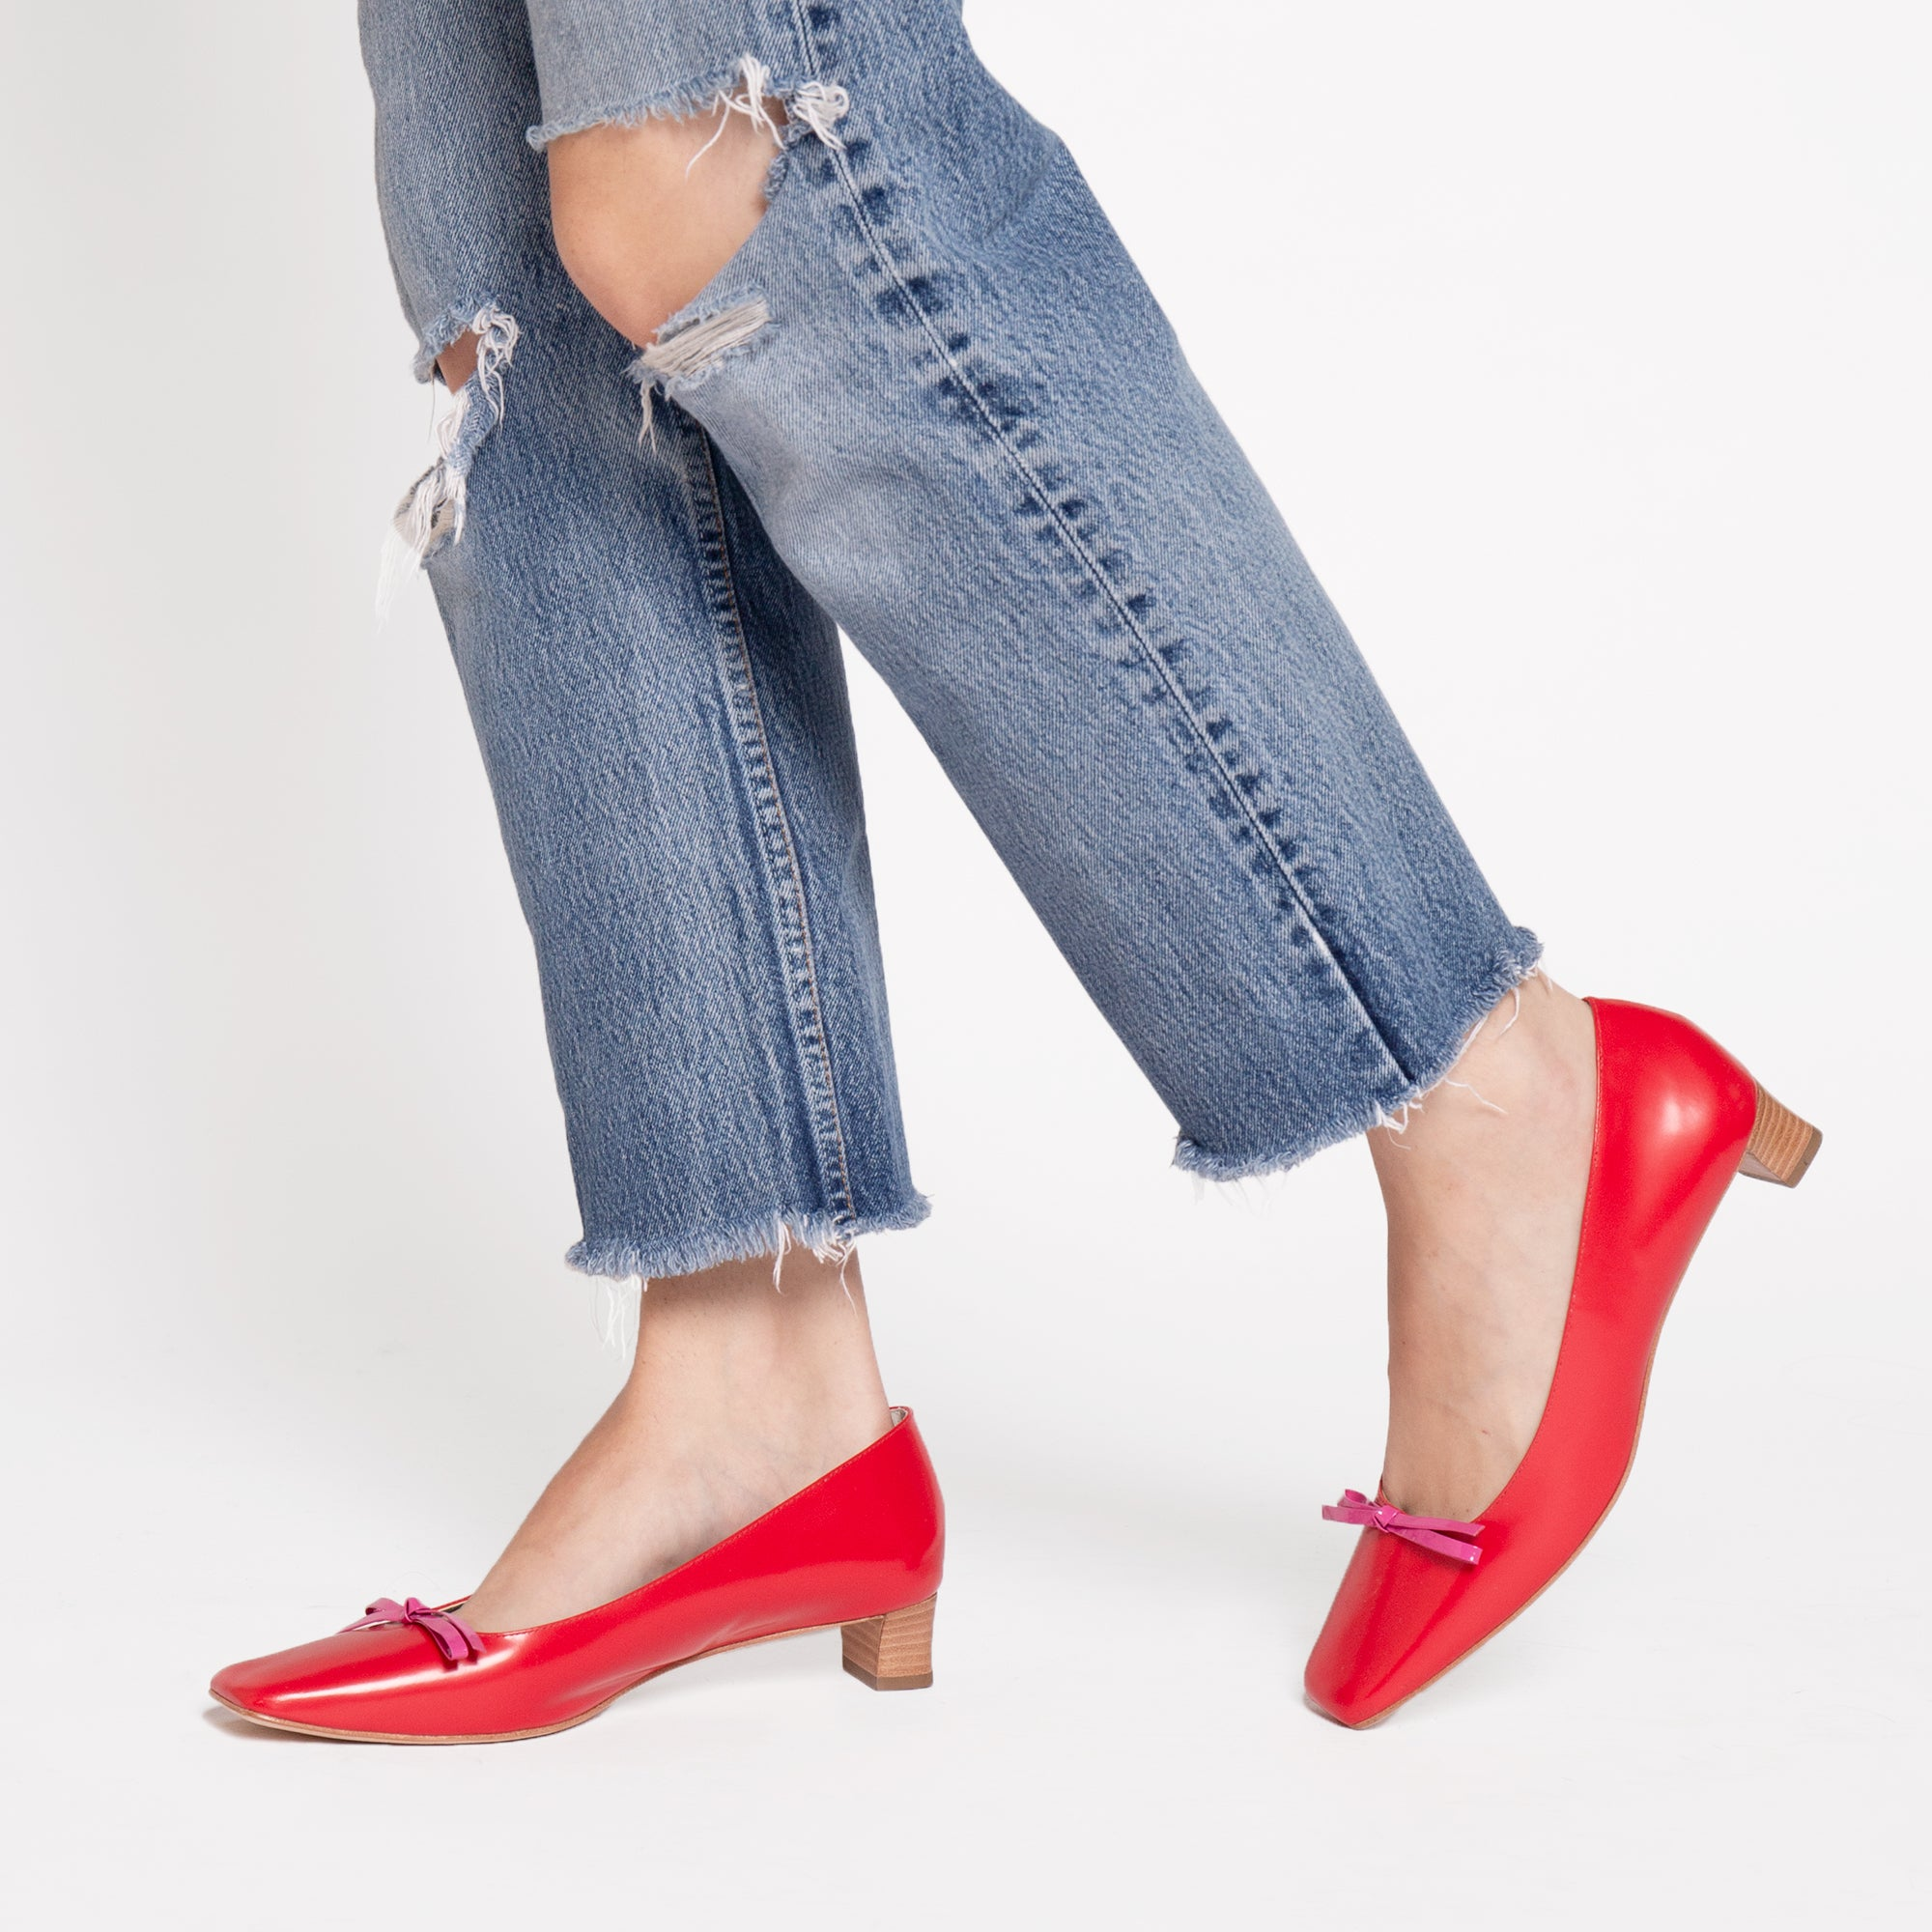 Mary Mini Block Heel Spazzalato Red Pink